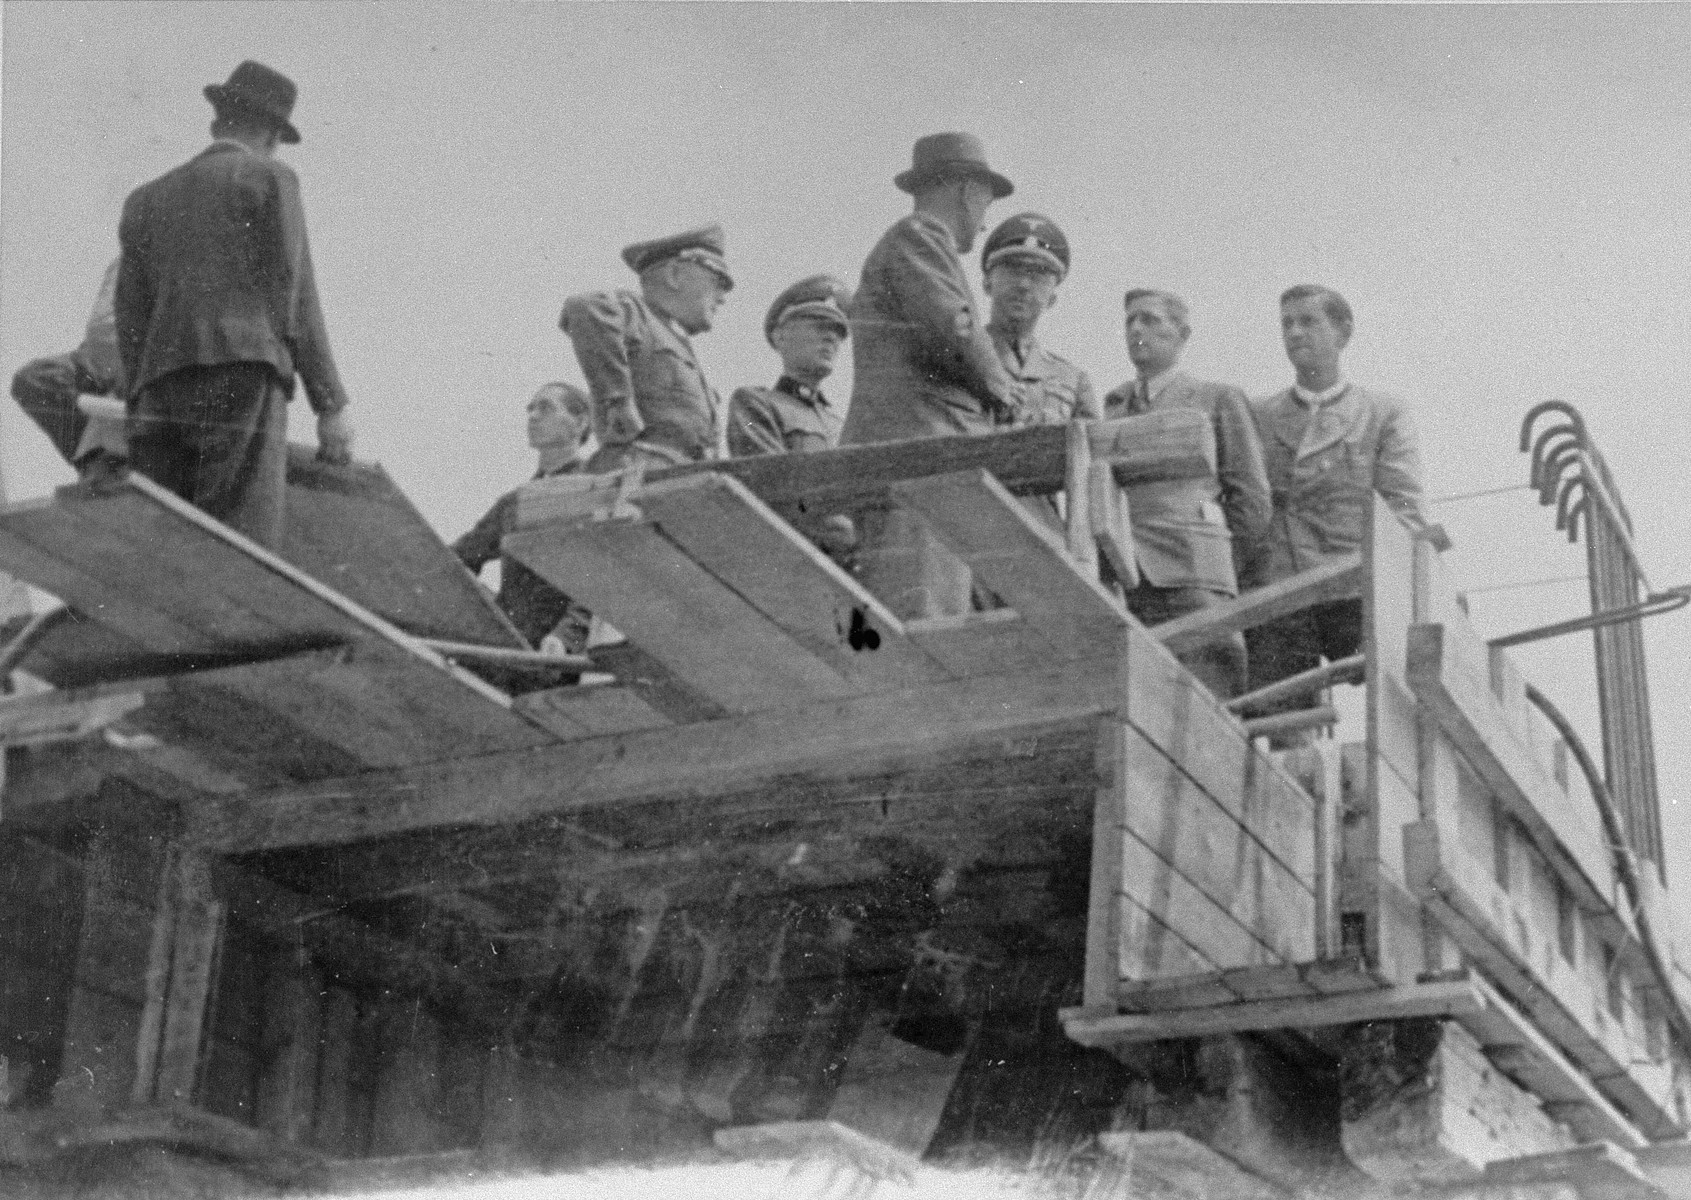 Reichsfuehrer SS Heinrich Himmler converses with Max Faust (wearing the fedora) on the upper floor of a partially constructed building, during a tour of the Monowitz-Buna building site.   Faust, who was an IG Farben engineer, was the head of building operations at Monowitz-Buna.